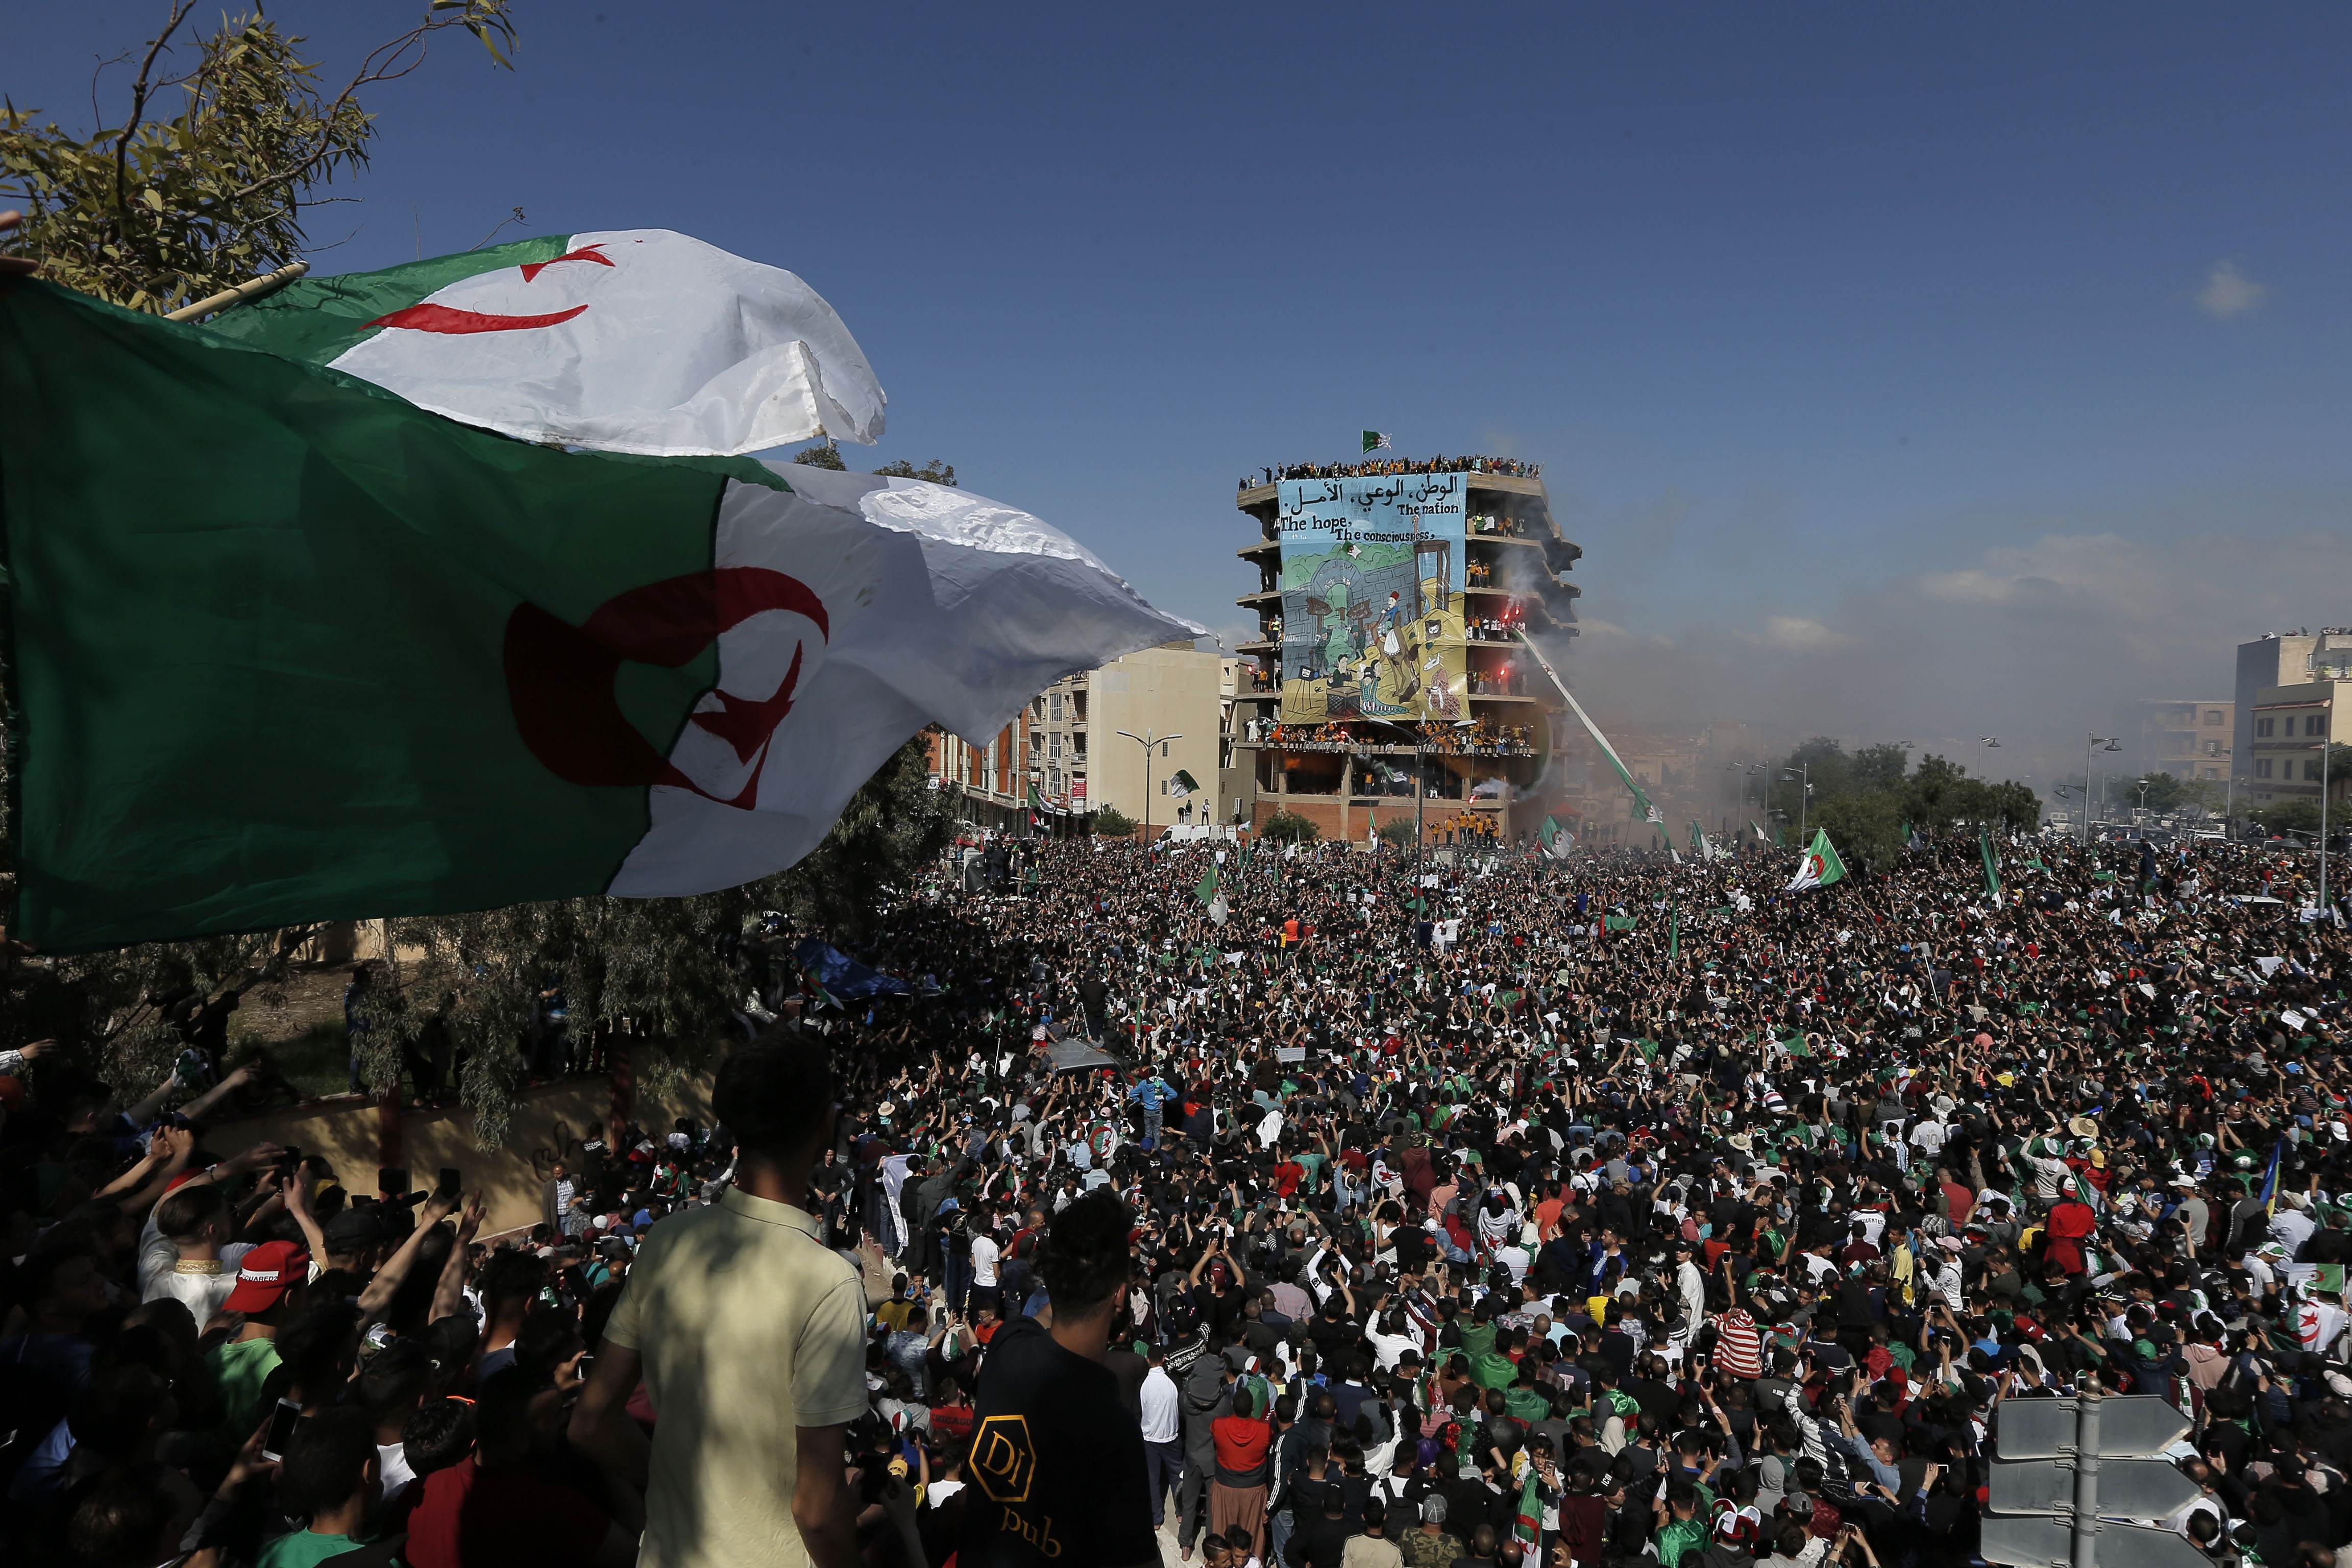 Demonstrators carry a giant Algerian flag during a protest in Bordj Bou Arreridj, east of Algiers, Friday, April 26, 2019. Algerians are massing for a 10th week of protests against their country's ruling class, calling for the ex-president's brother to be put on trial. (AP Photo/Toufik Doudou)